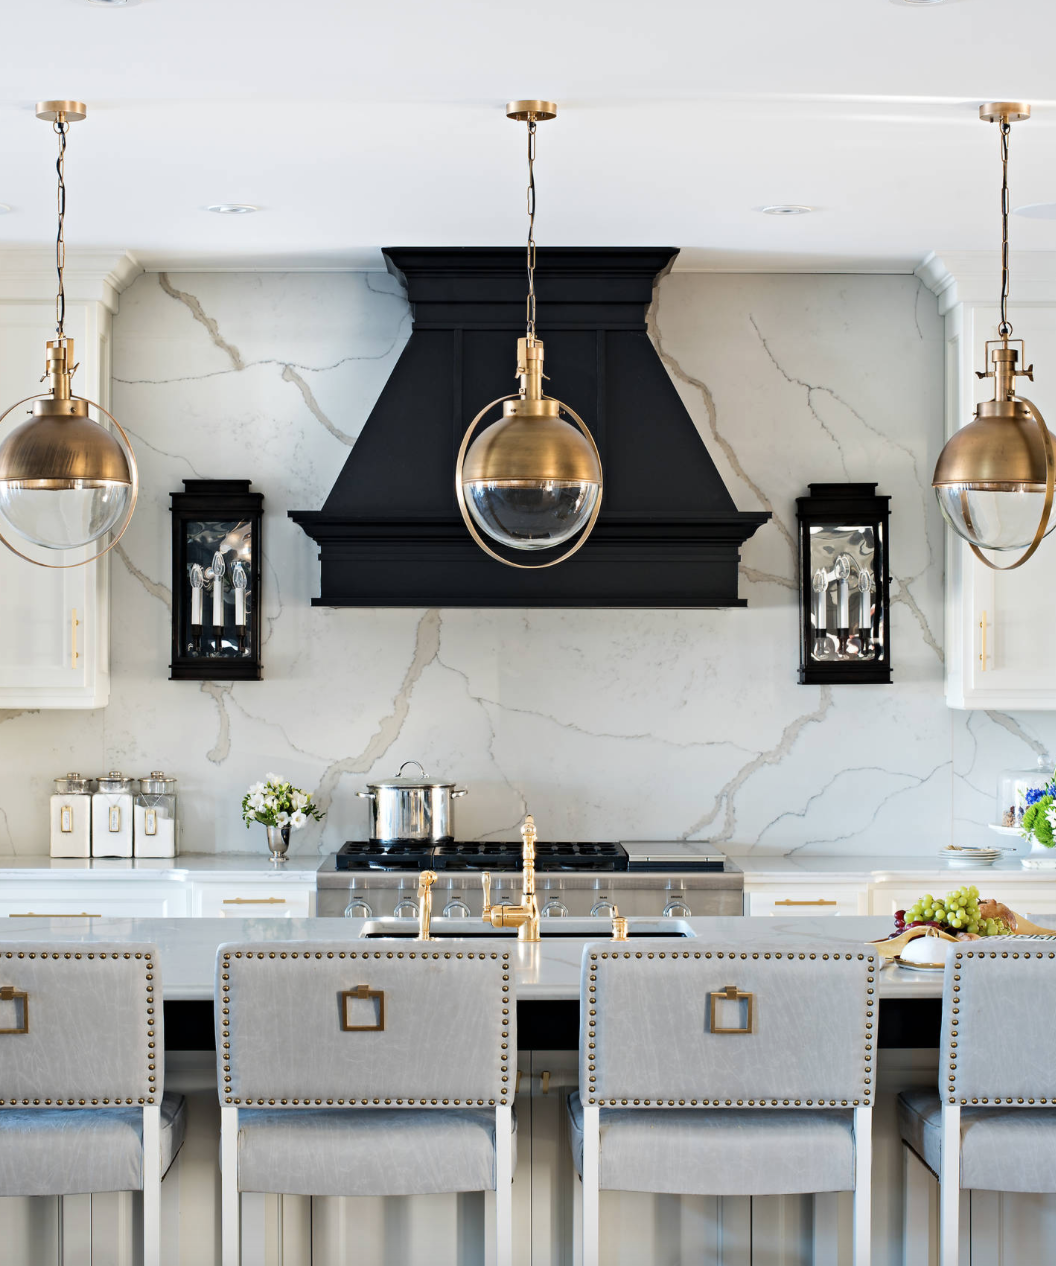 Old Style Candle Sconces And Brass Pendant Lights Black Hood - Black kitchen pendants